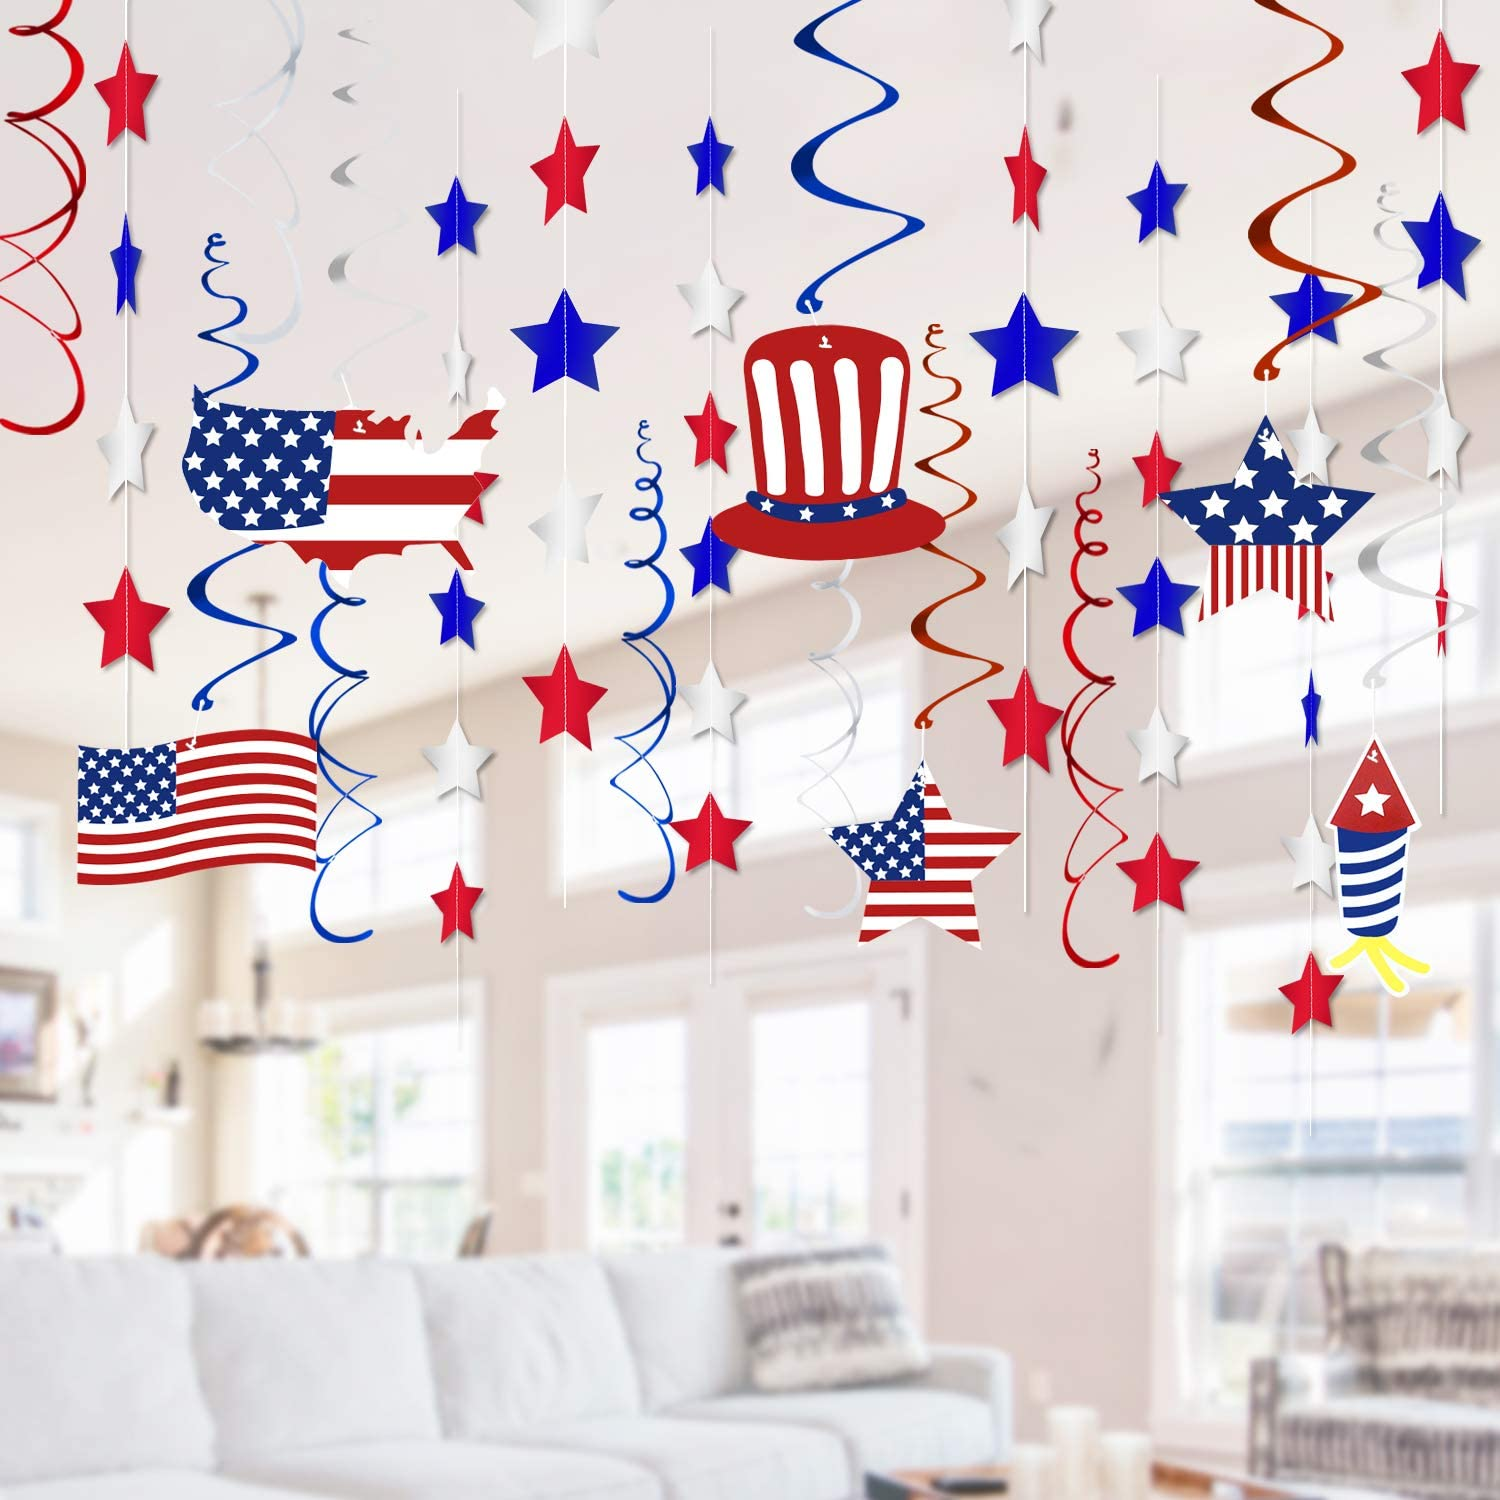 12th of July Decorations, Fourth of July Patriotic Party Decorations  Supplies, Pack of 12  Included 12PCs Foil Red White and Blue Star Garland,  12PCs